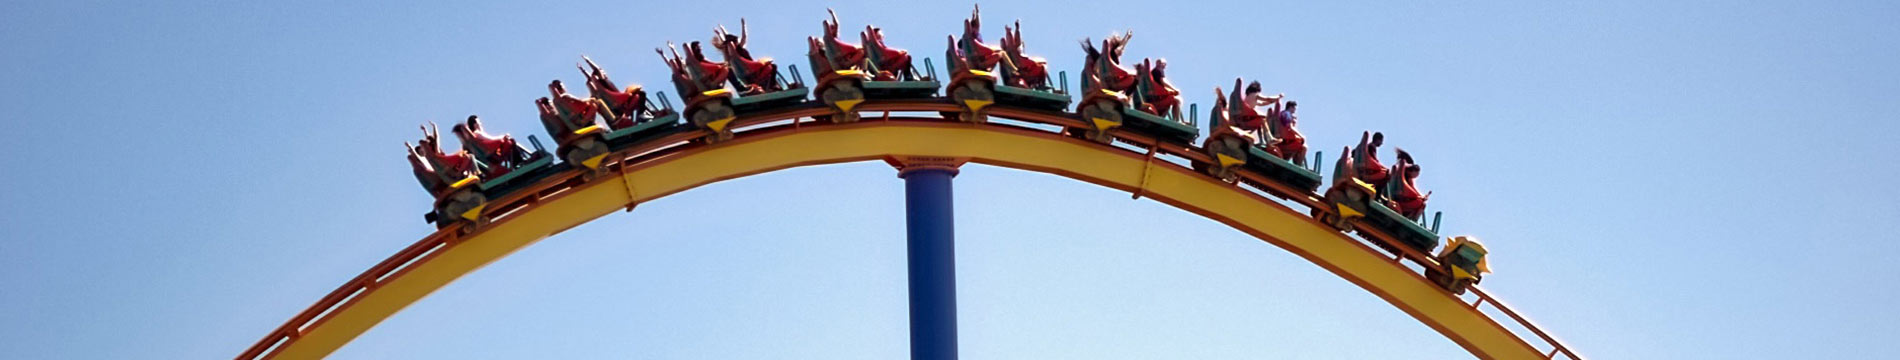 Theme Park Buyouts at Canada's Wonderland